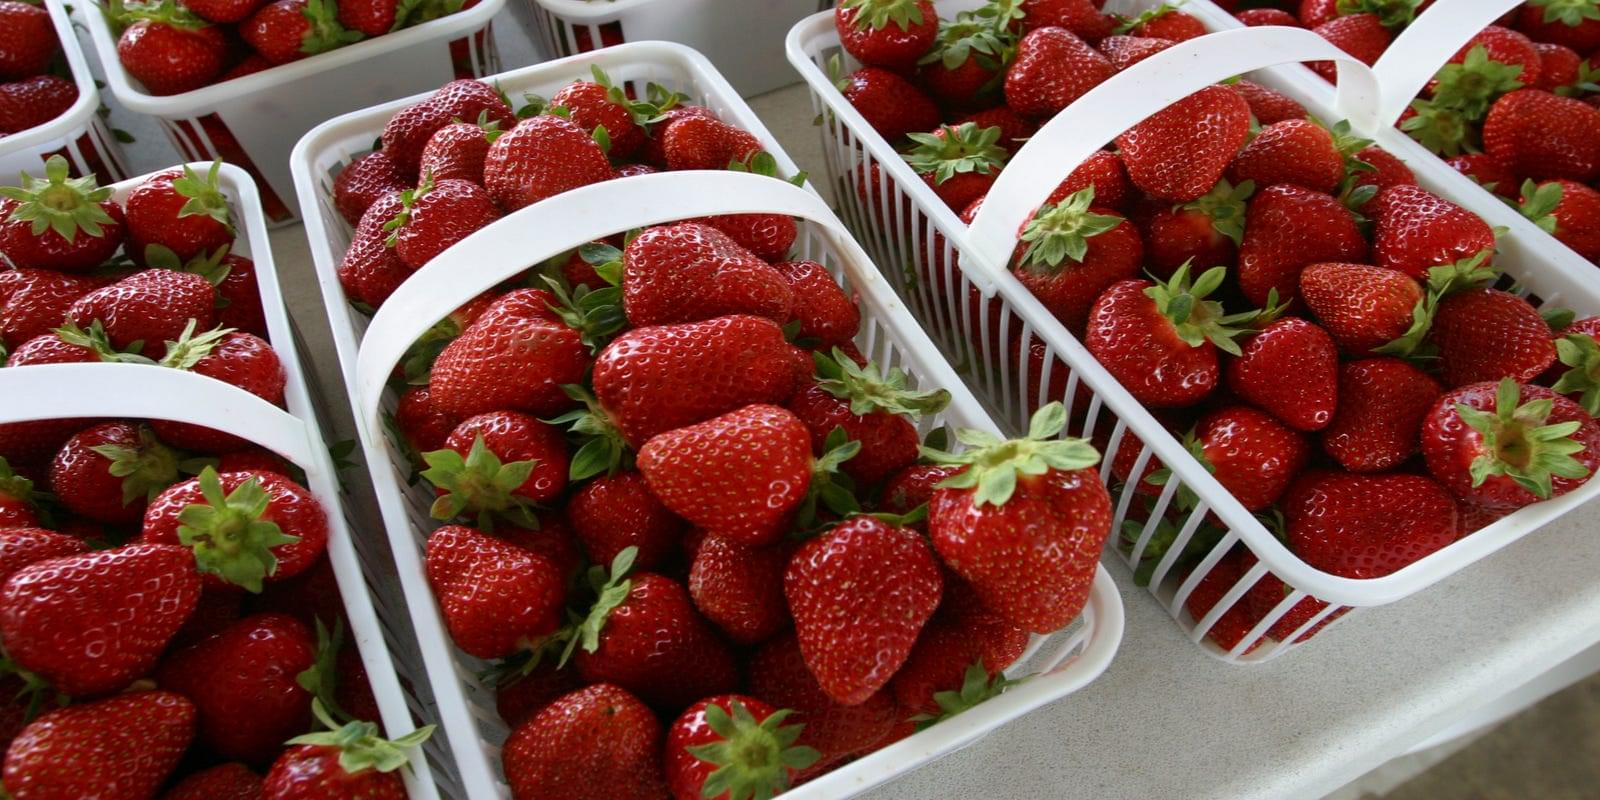 Strawberries top Dirty Dozen 2021: View the list of foods with the most and least pesticides